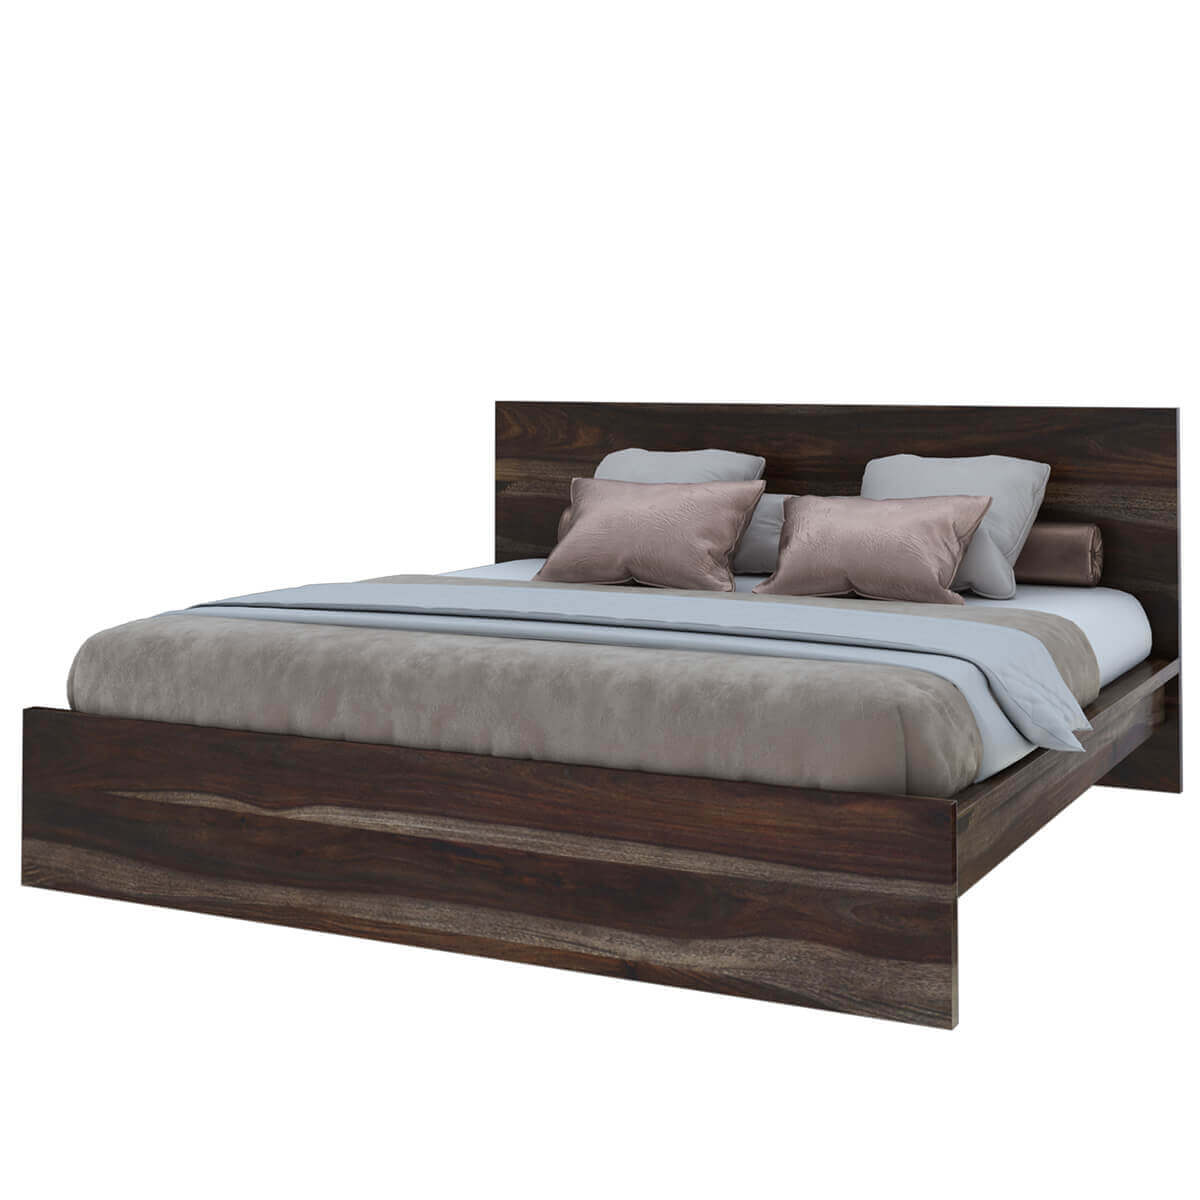 modern simplicity solid wood platform bed frame. Black Bedroom Furniture Sets. Home Design Ideas